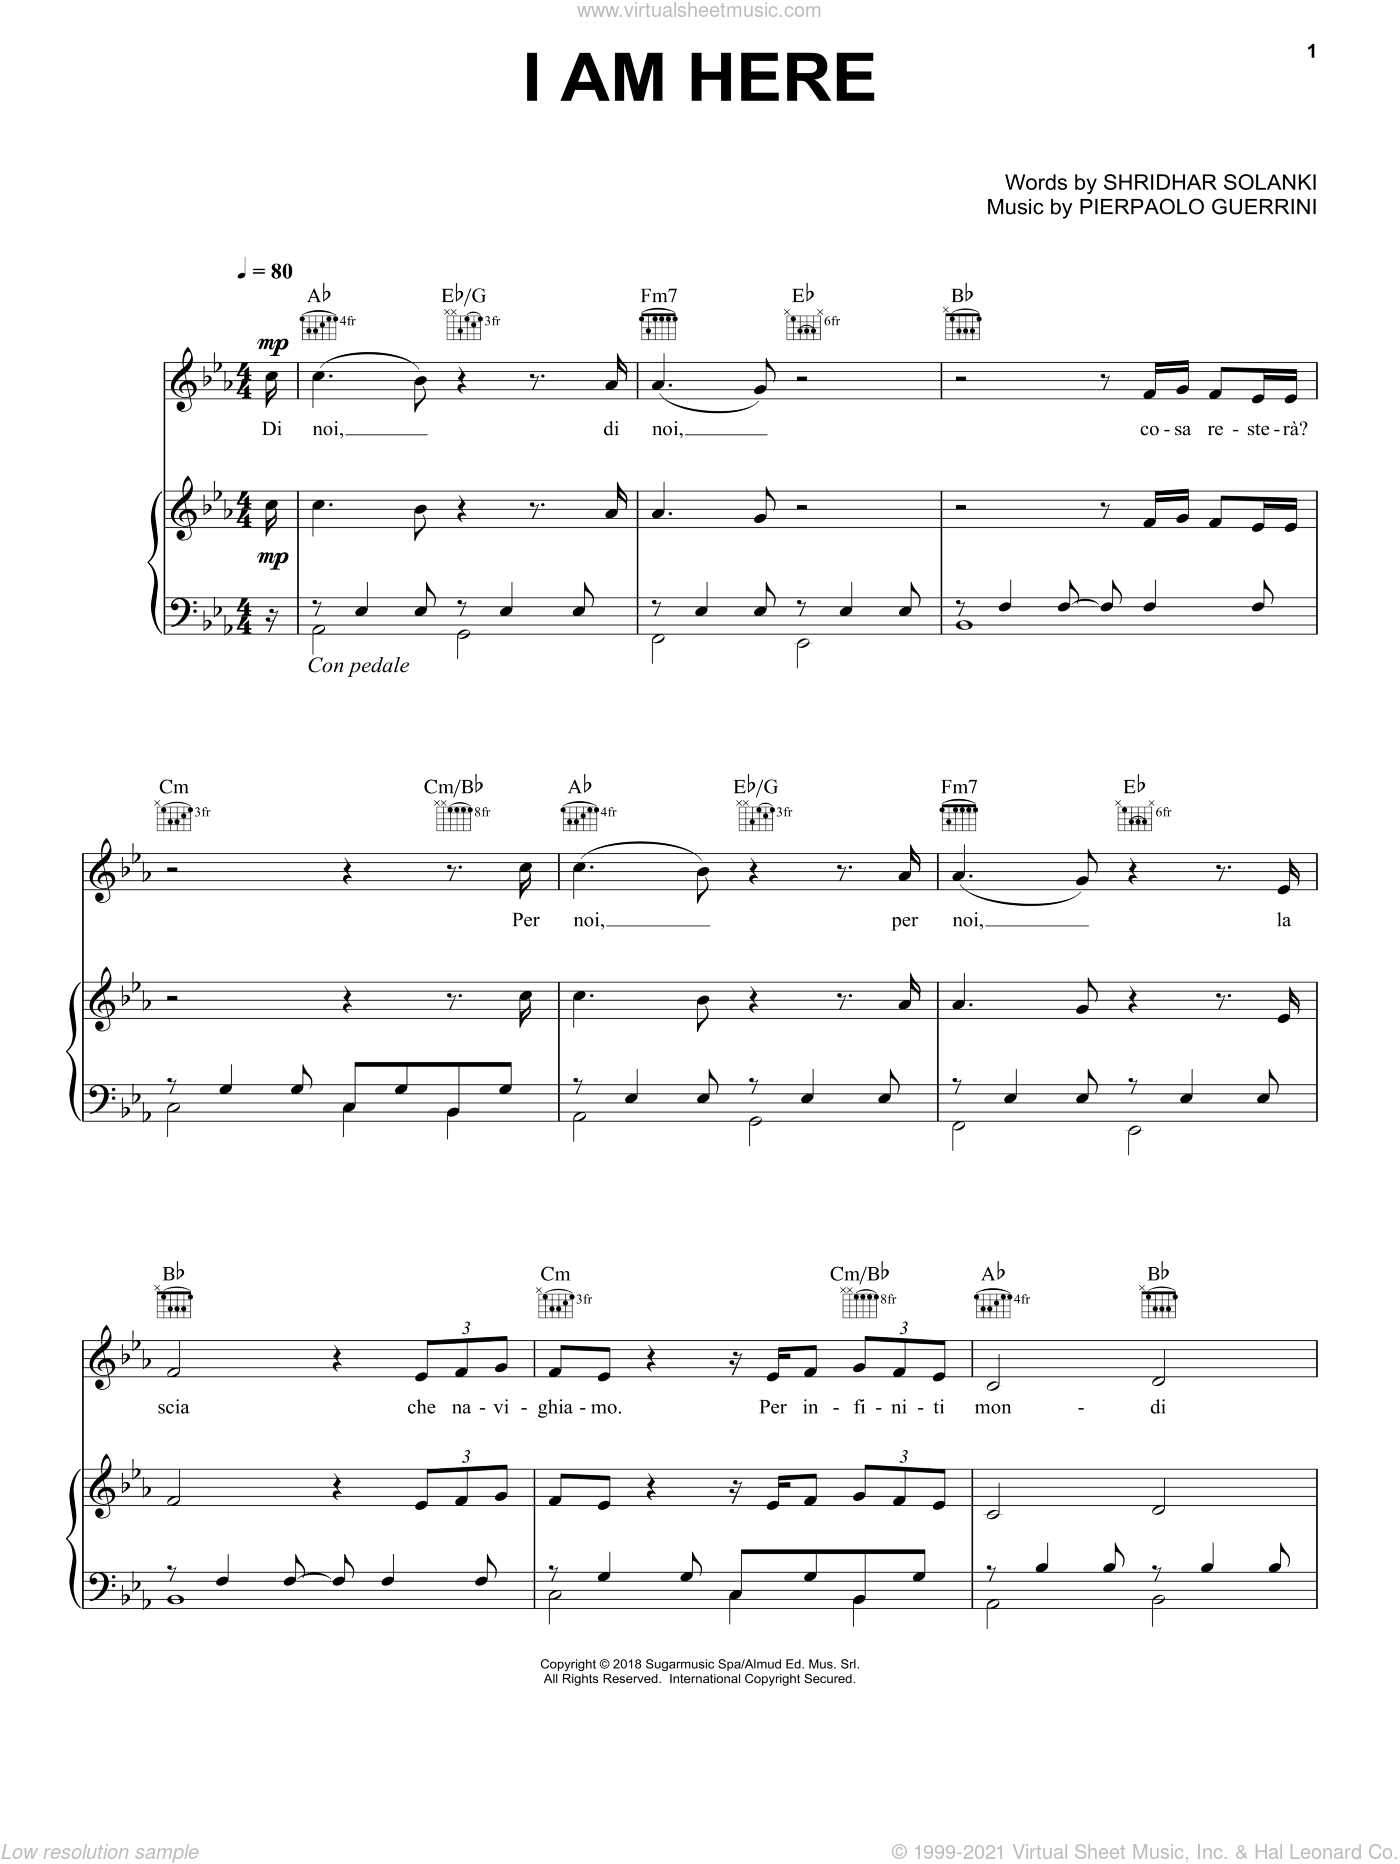 I Am Here sheet music for voice, piano or guitar by Andrea Bocelli, Pierpaolo Guerrini and Shridhar Solanki, intermediate skill level